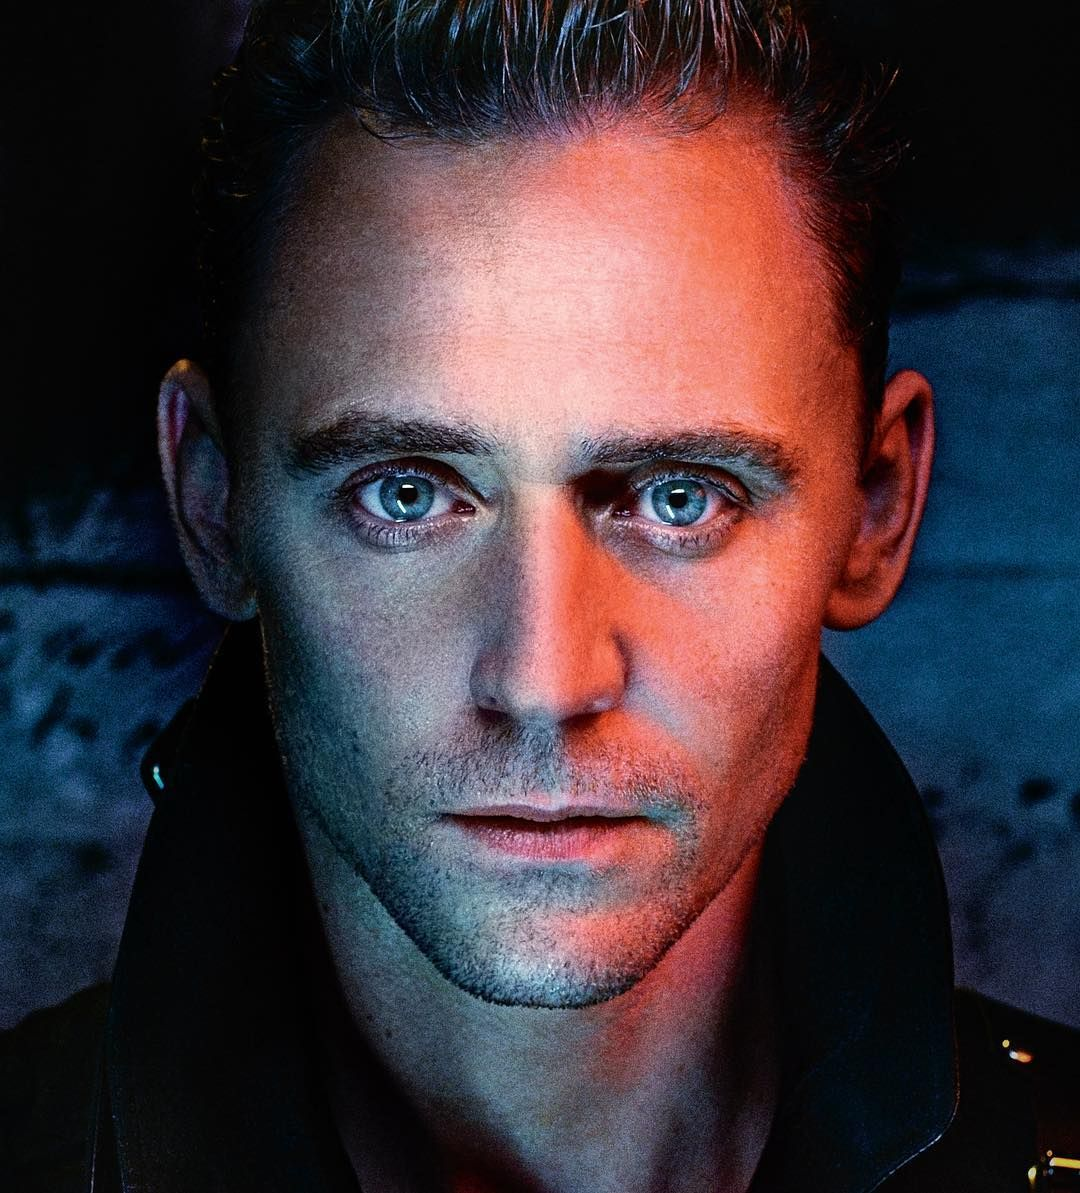 Tom Hiddleston by Steven Klein Studio for Interview Magazine